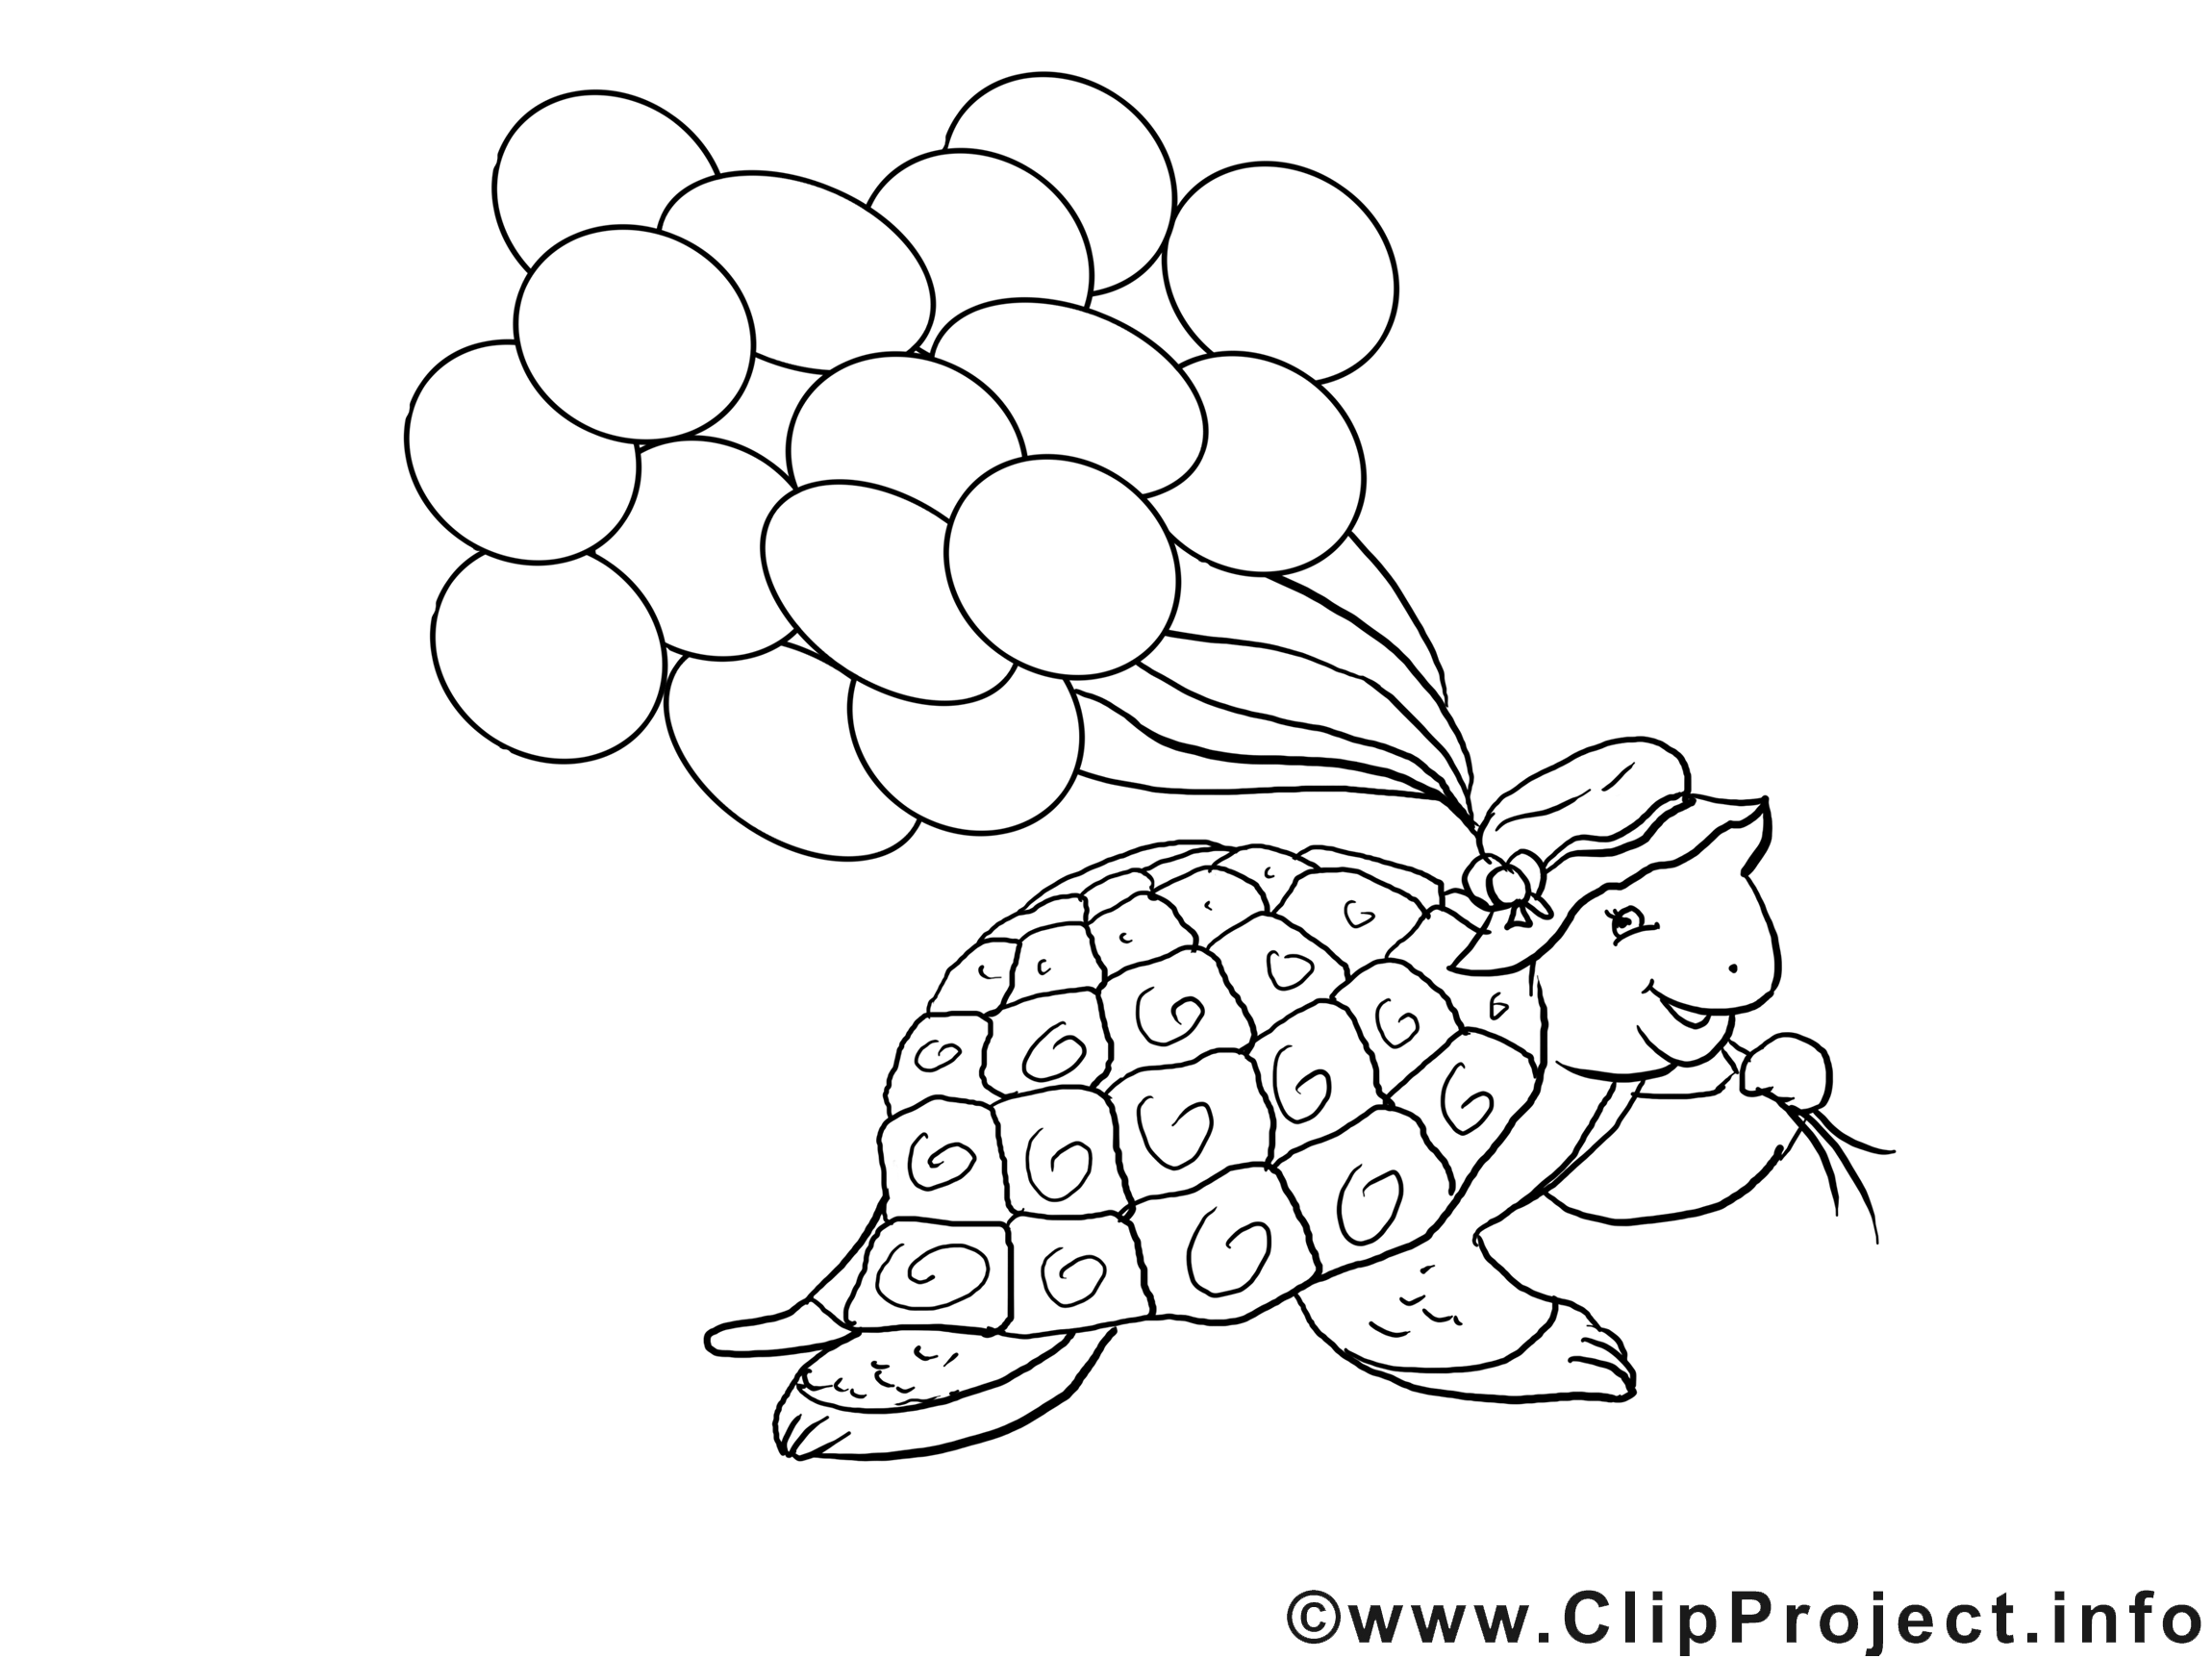 Tortue dessin gratuit – Animal à colorier